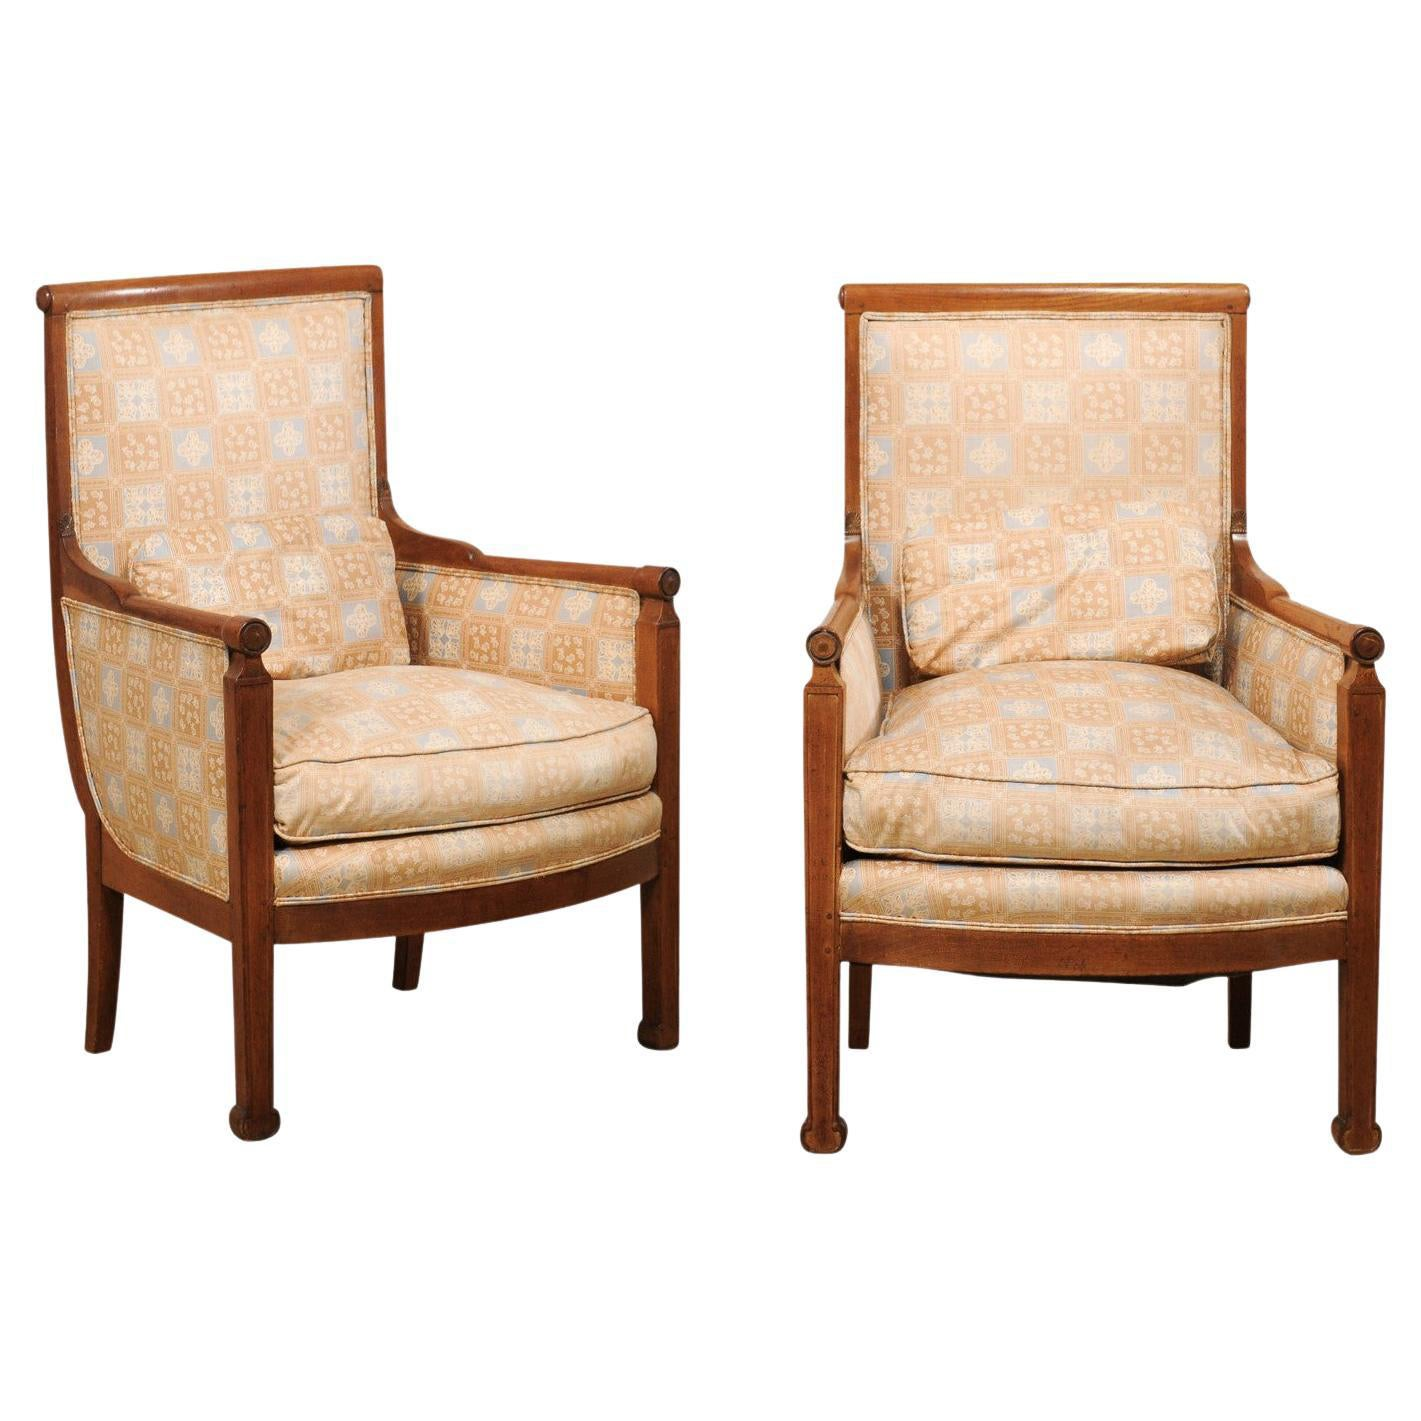 French Pair of Carved-Wood & Upholstered Square-Back Armchairs, Mid 20th Century